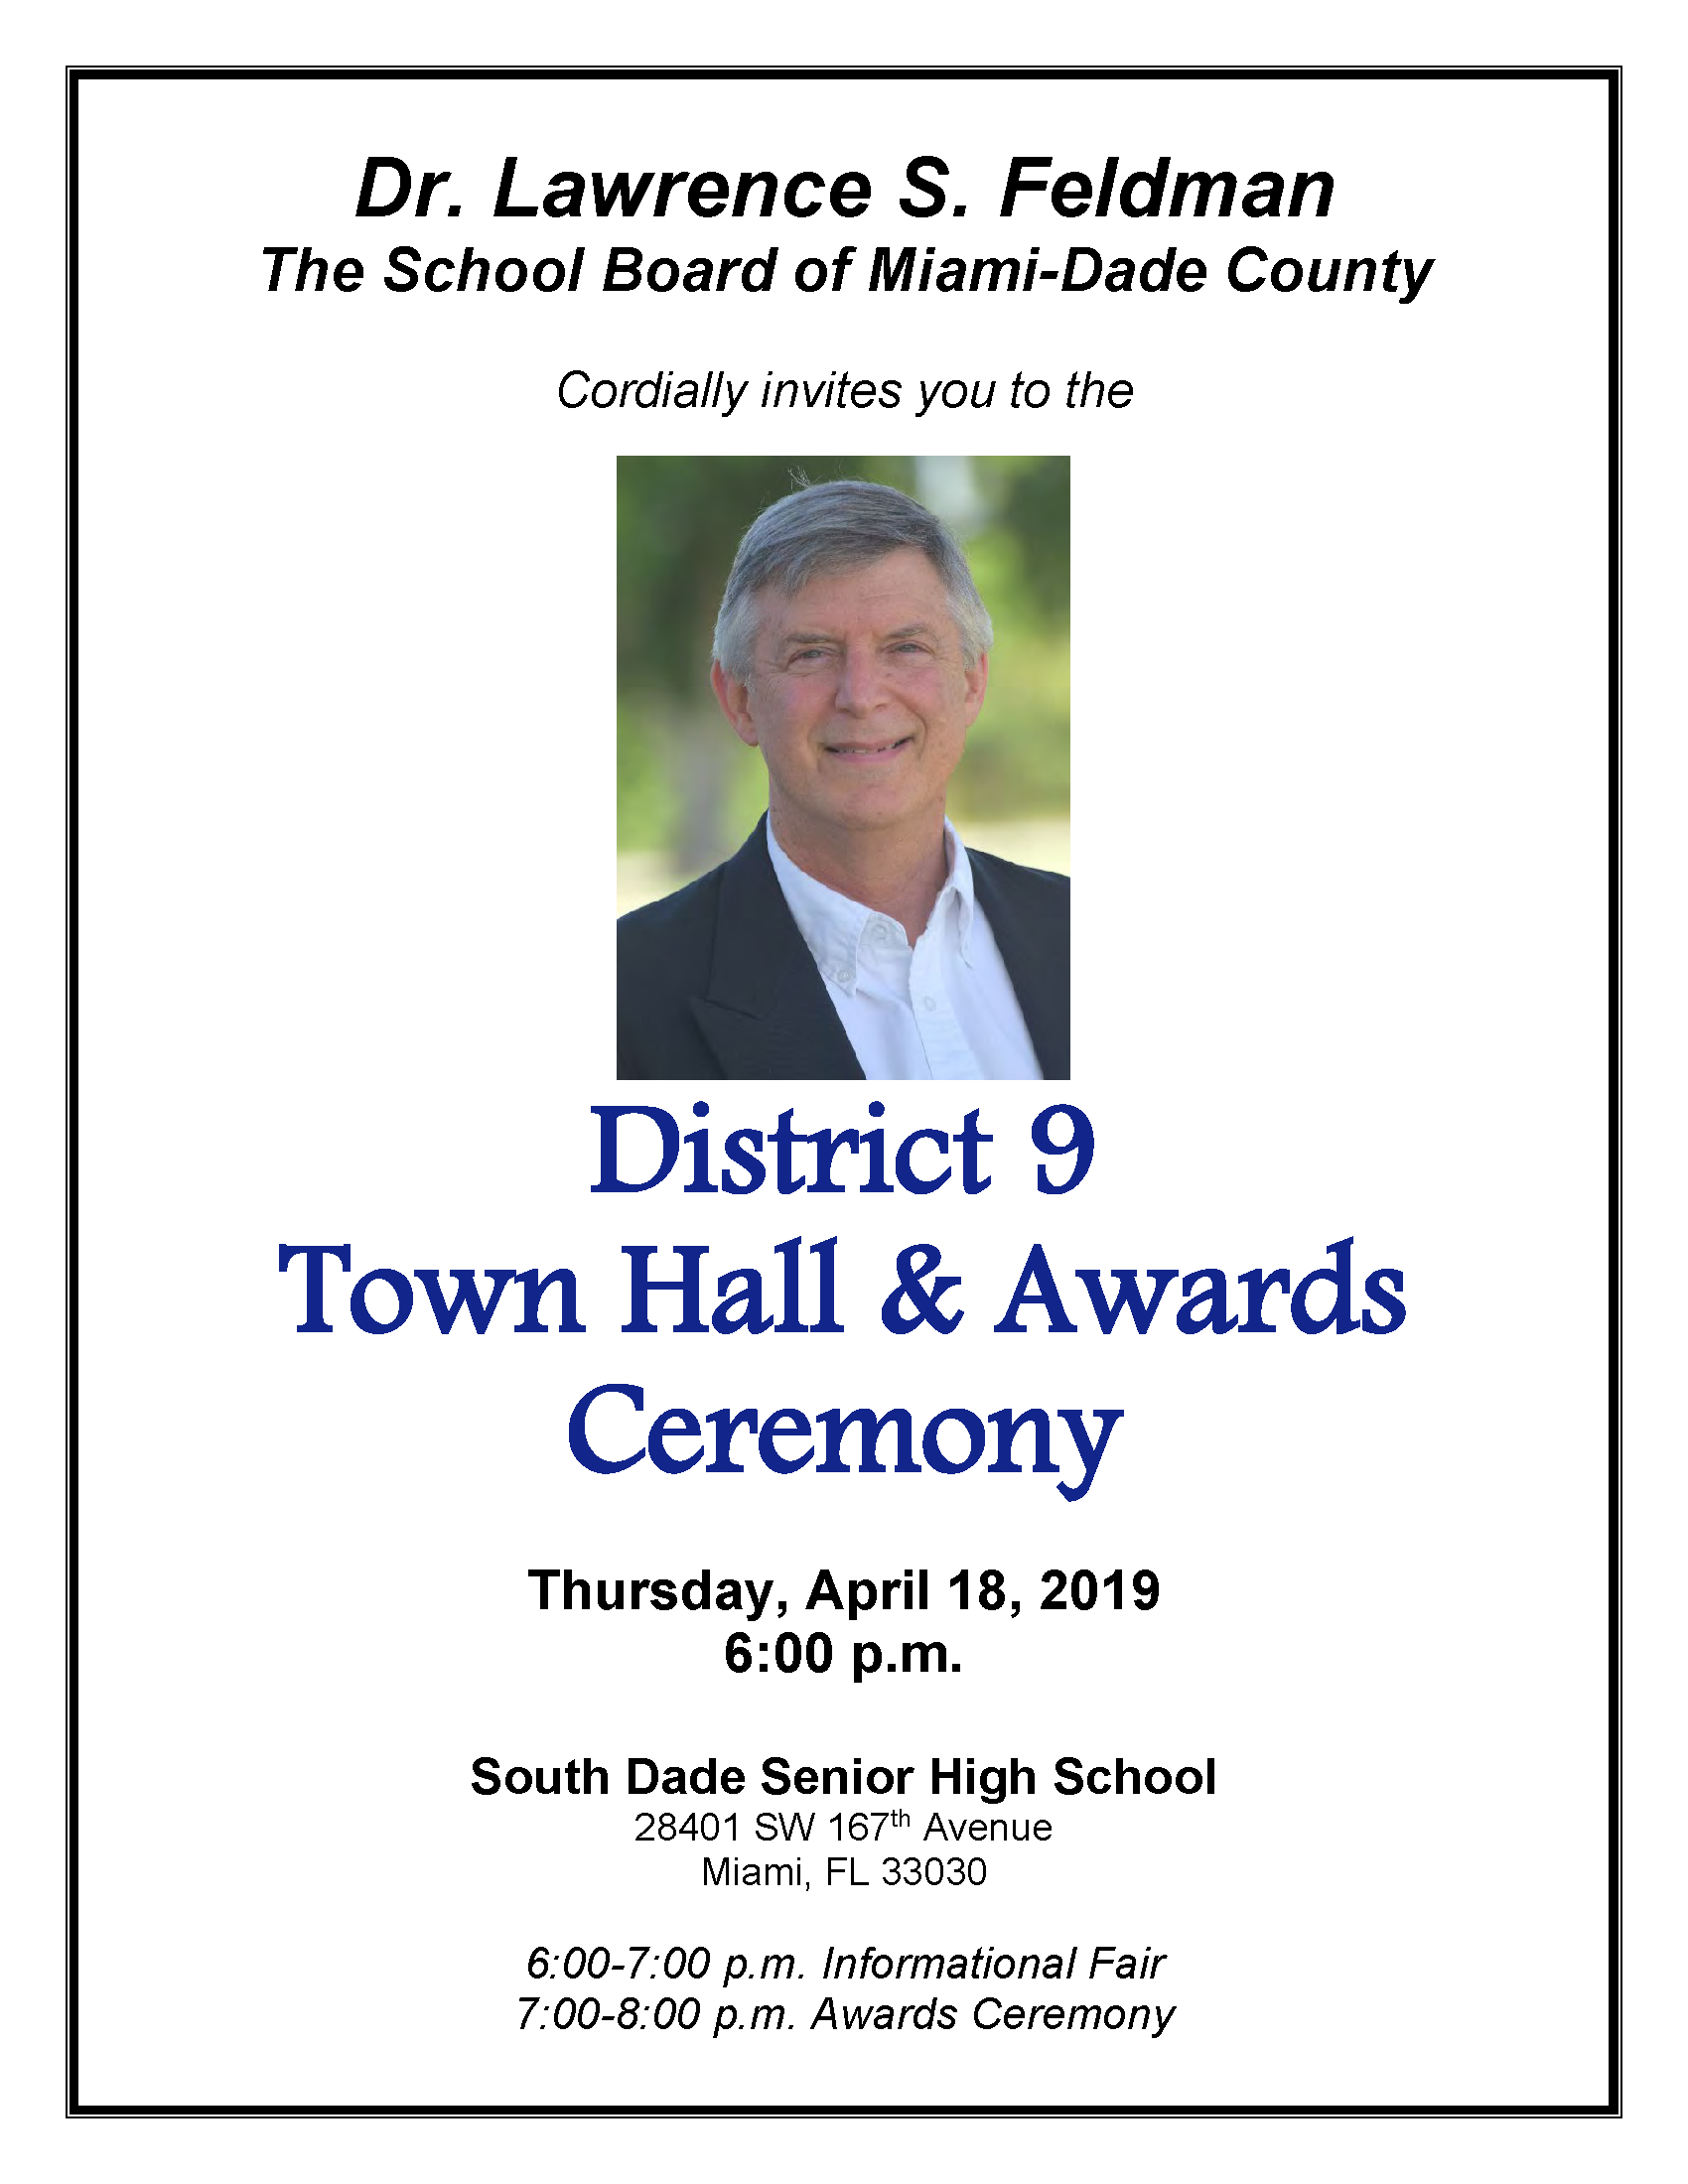 District 9 Town Hall & Awards Ceremony @ South Dade Senior High | Homestead | Florida | United States